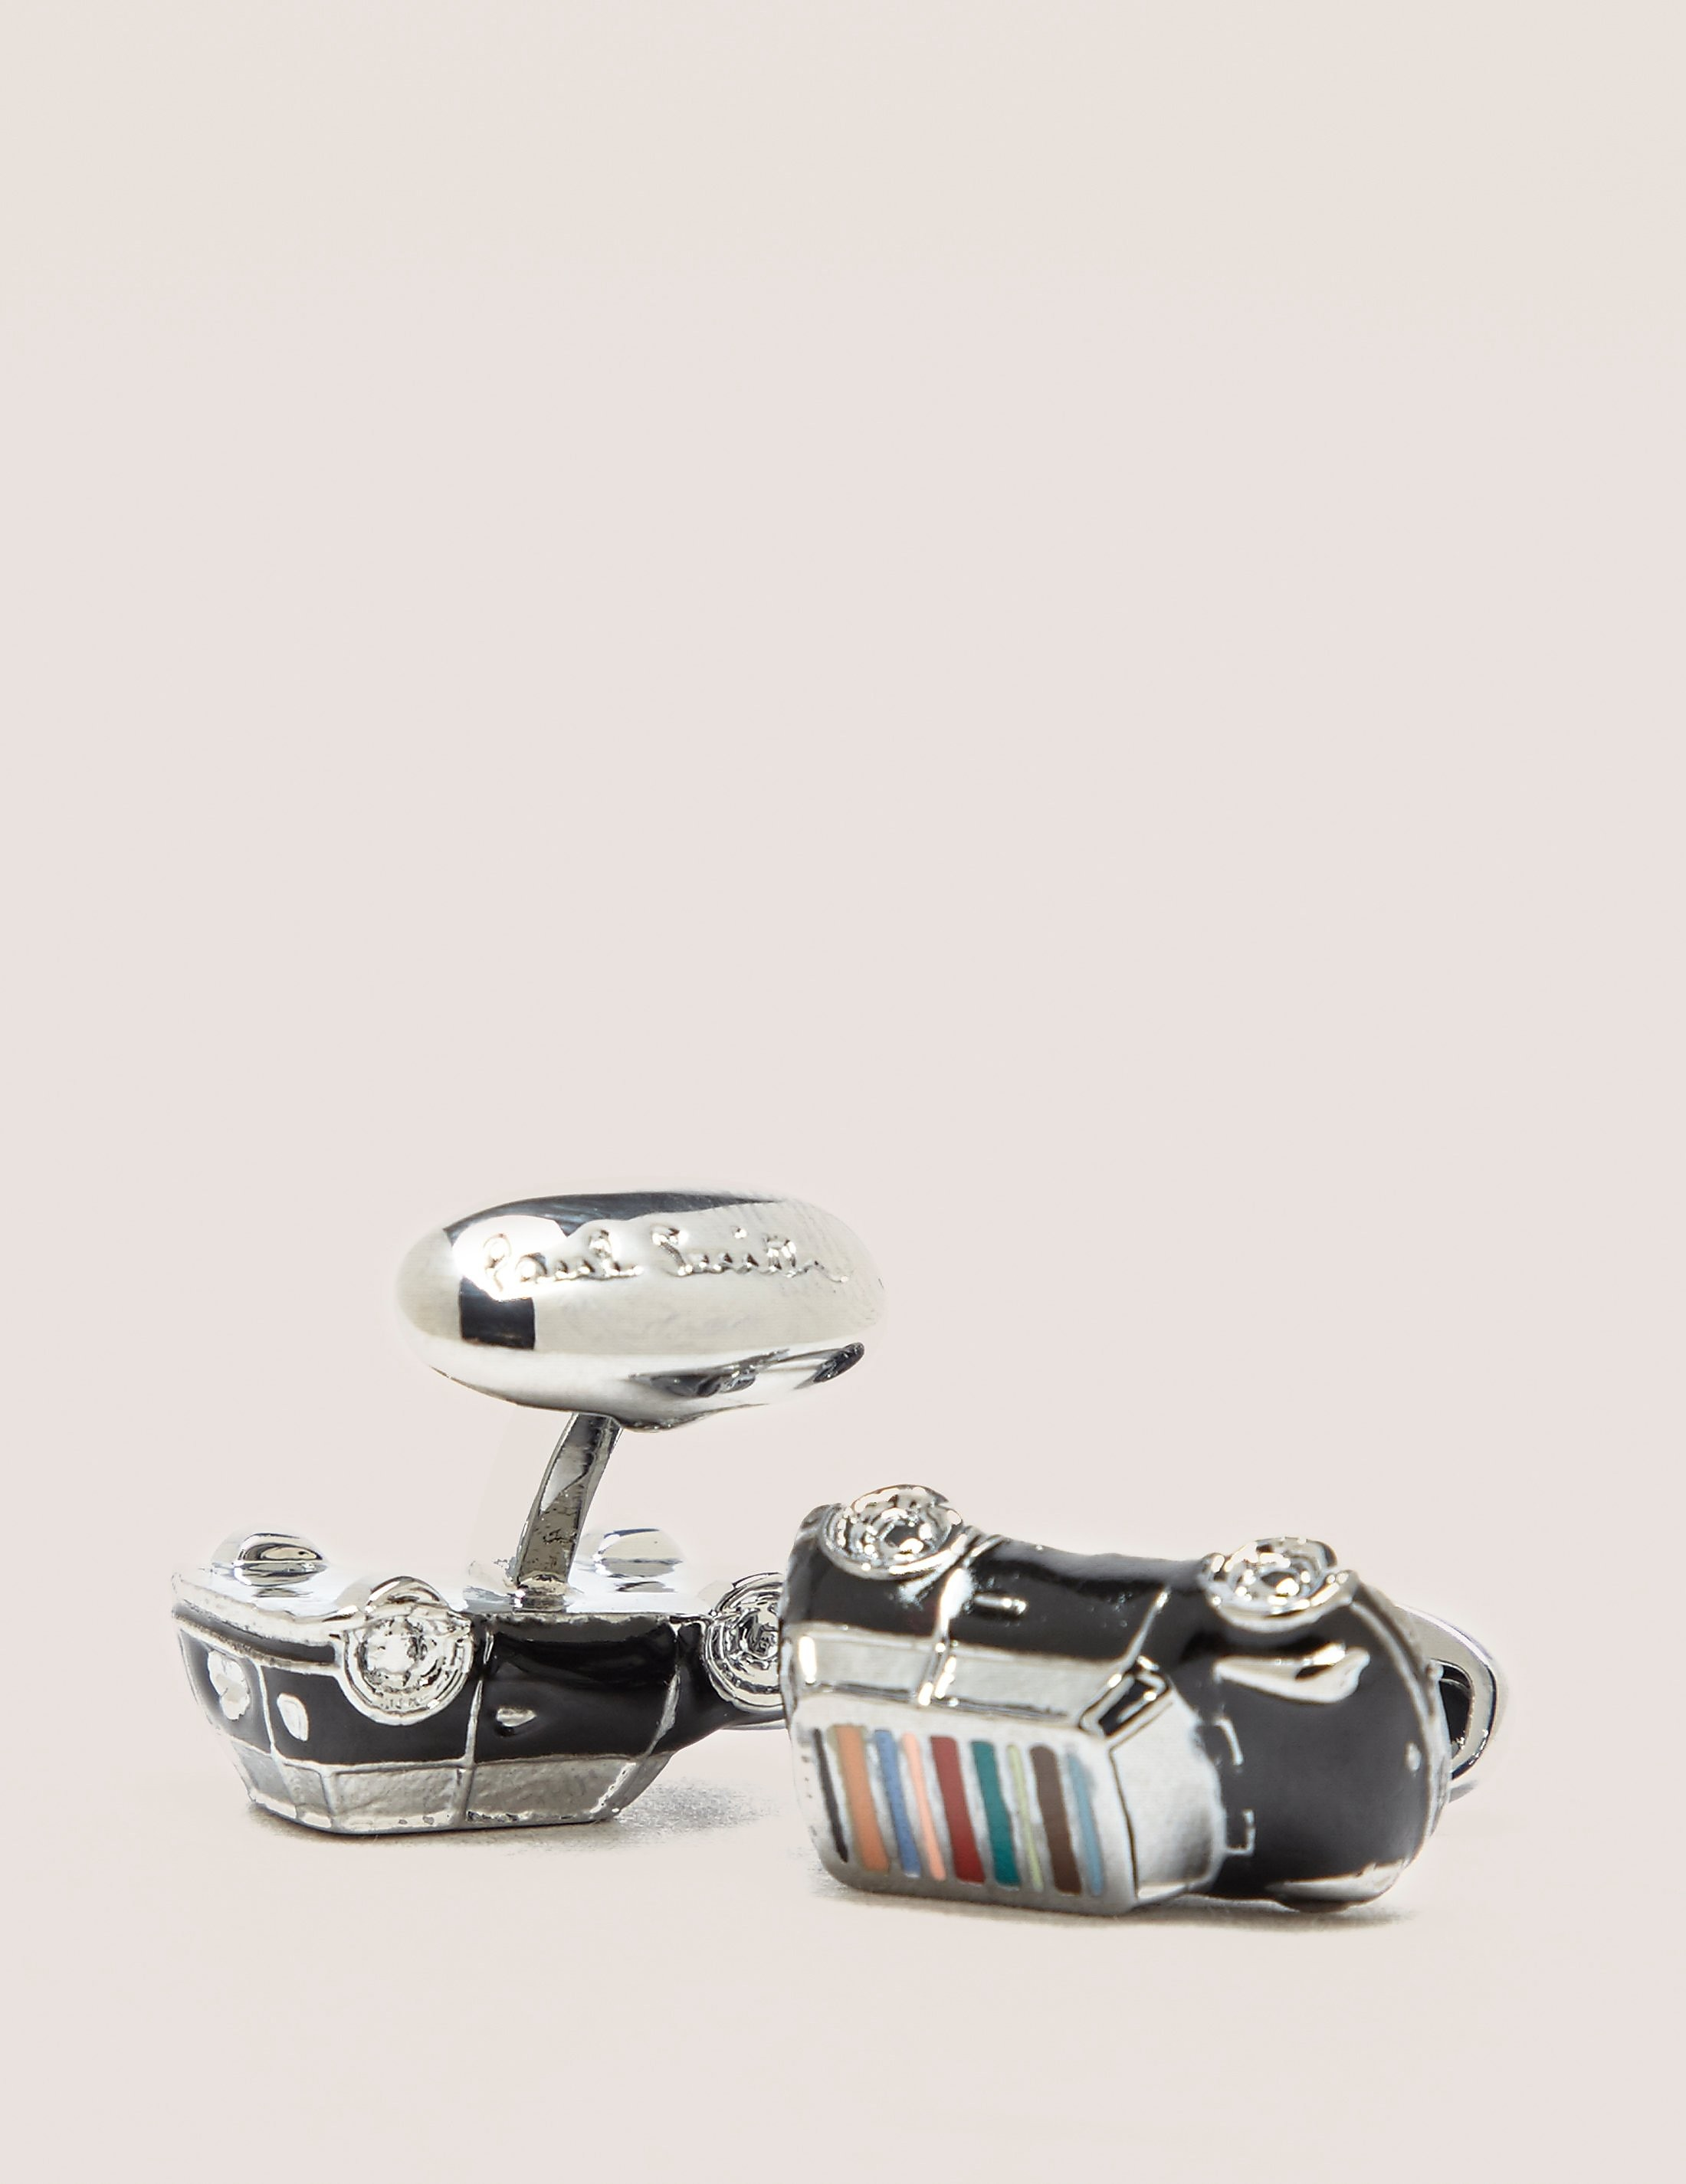 Paul Smith Mini-Car Cufflinks